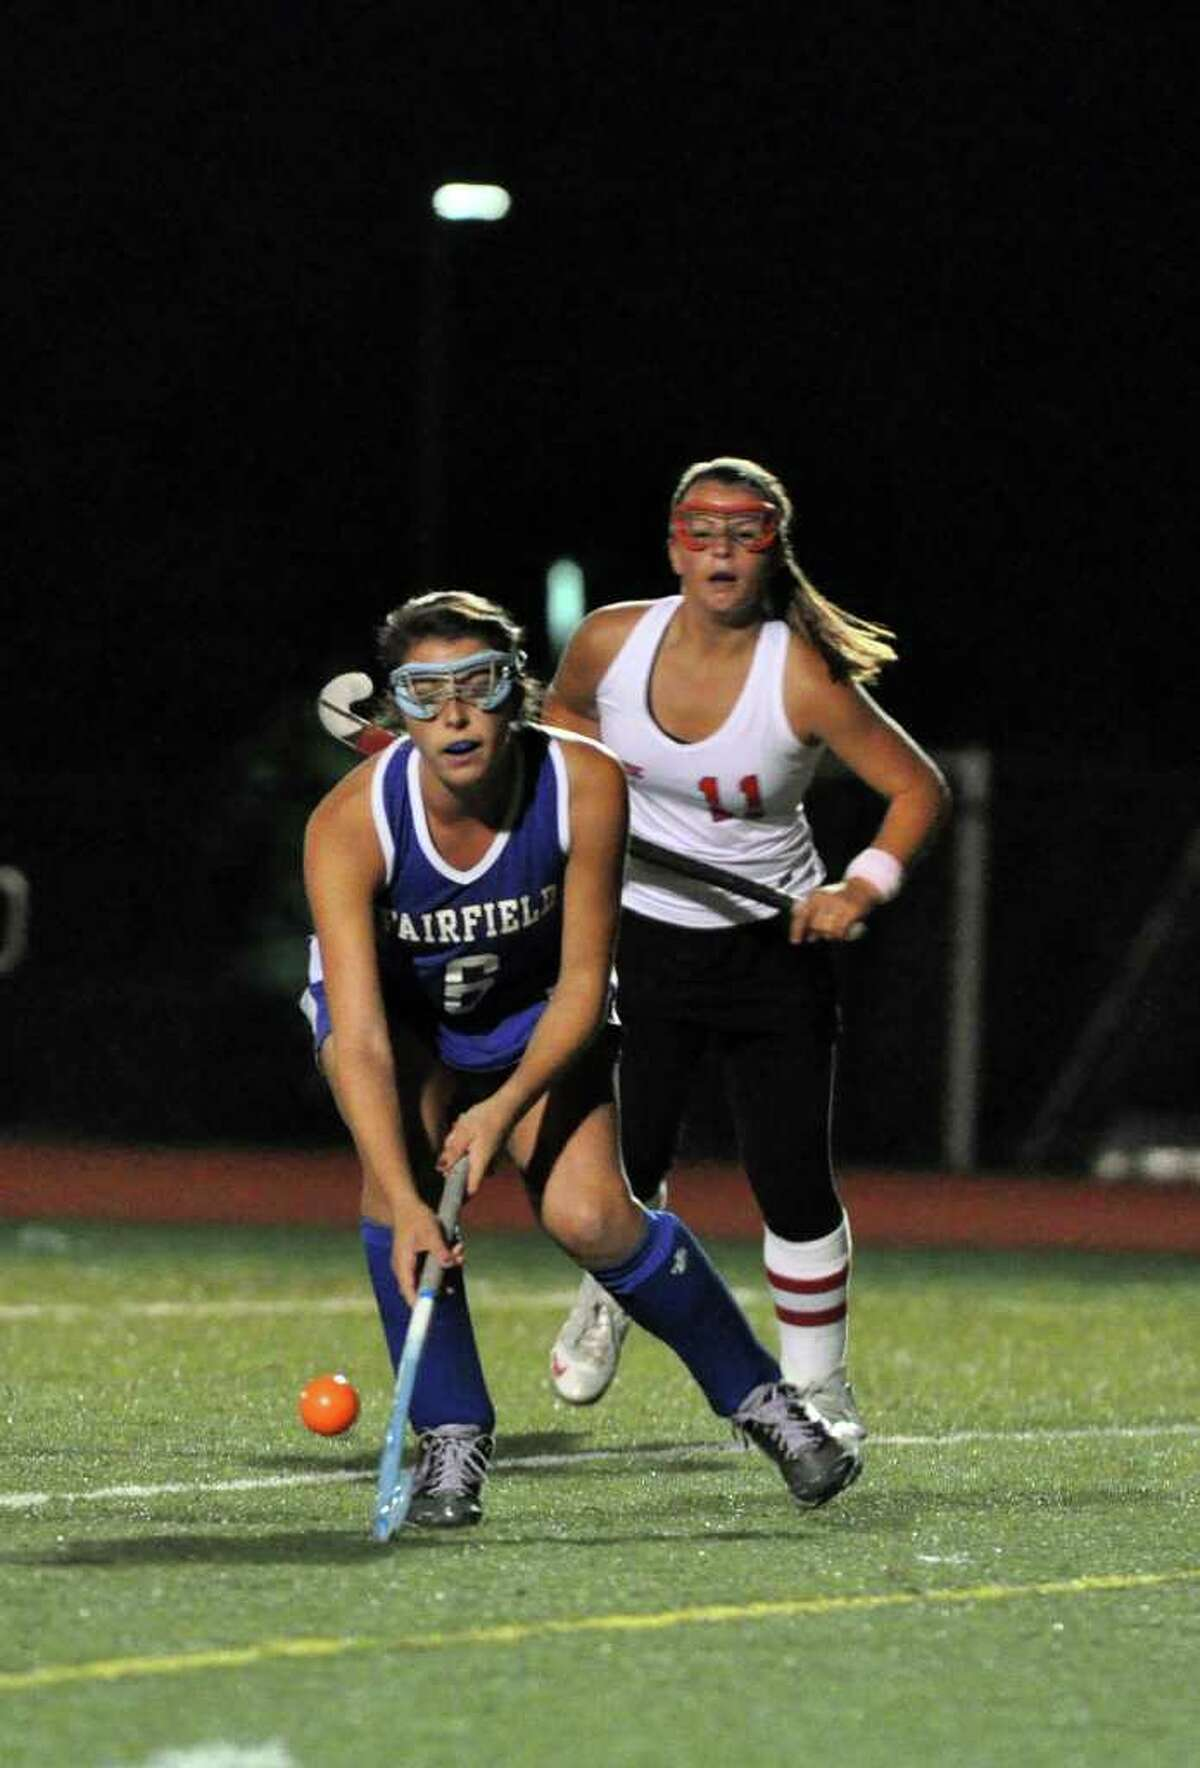 Fairfield Ludlowe's Meredith McGann takes control of the ball as Fairfield Warde's Stacey DiLeo chases after during the field hockey game at Warde on Thursday, Oct. 7, 2010.